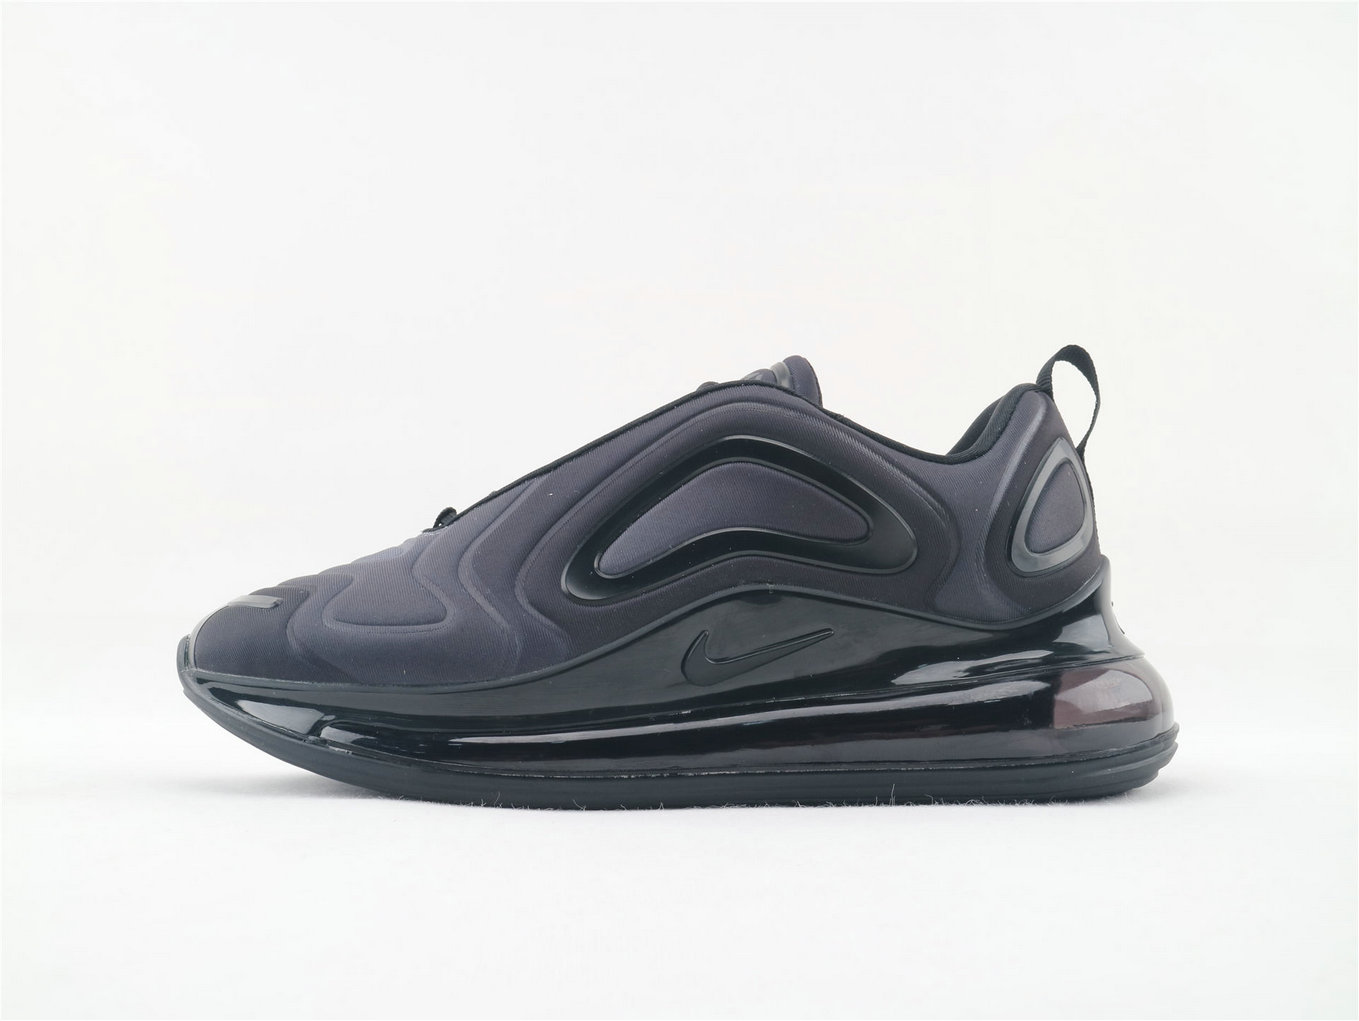 Where To Buy Wholesale Cheap Womens Nike Sportwear Air Max 720 All Black-Anthracite AO2924-004 - www.wholesaleflyknit.com